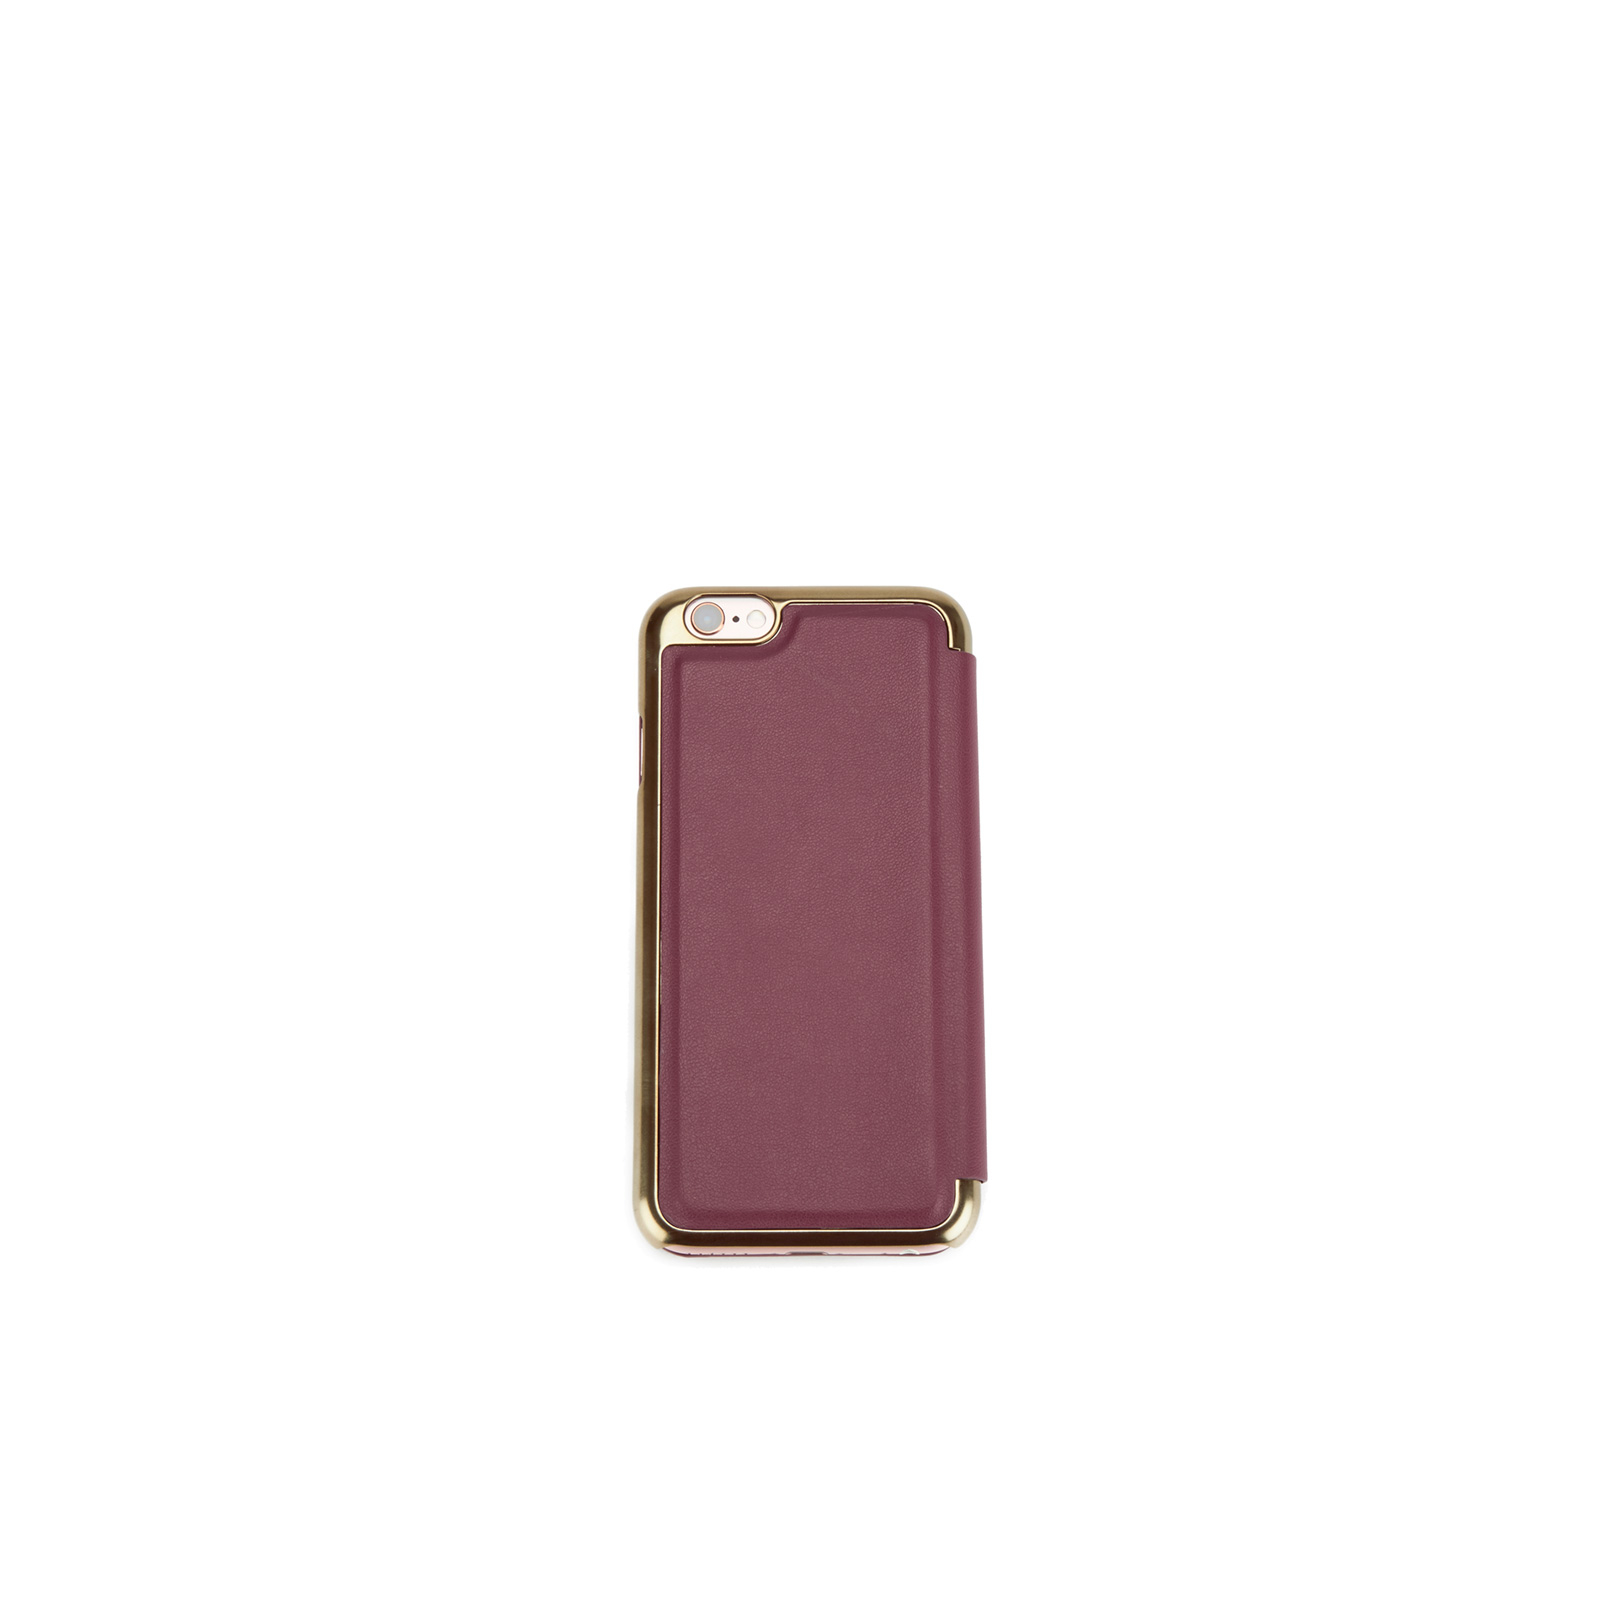 bdfc50dfa71 Ted Baker Women's Shannon iPhone 6 Folded Case with Mirror - Oxblood